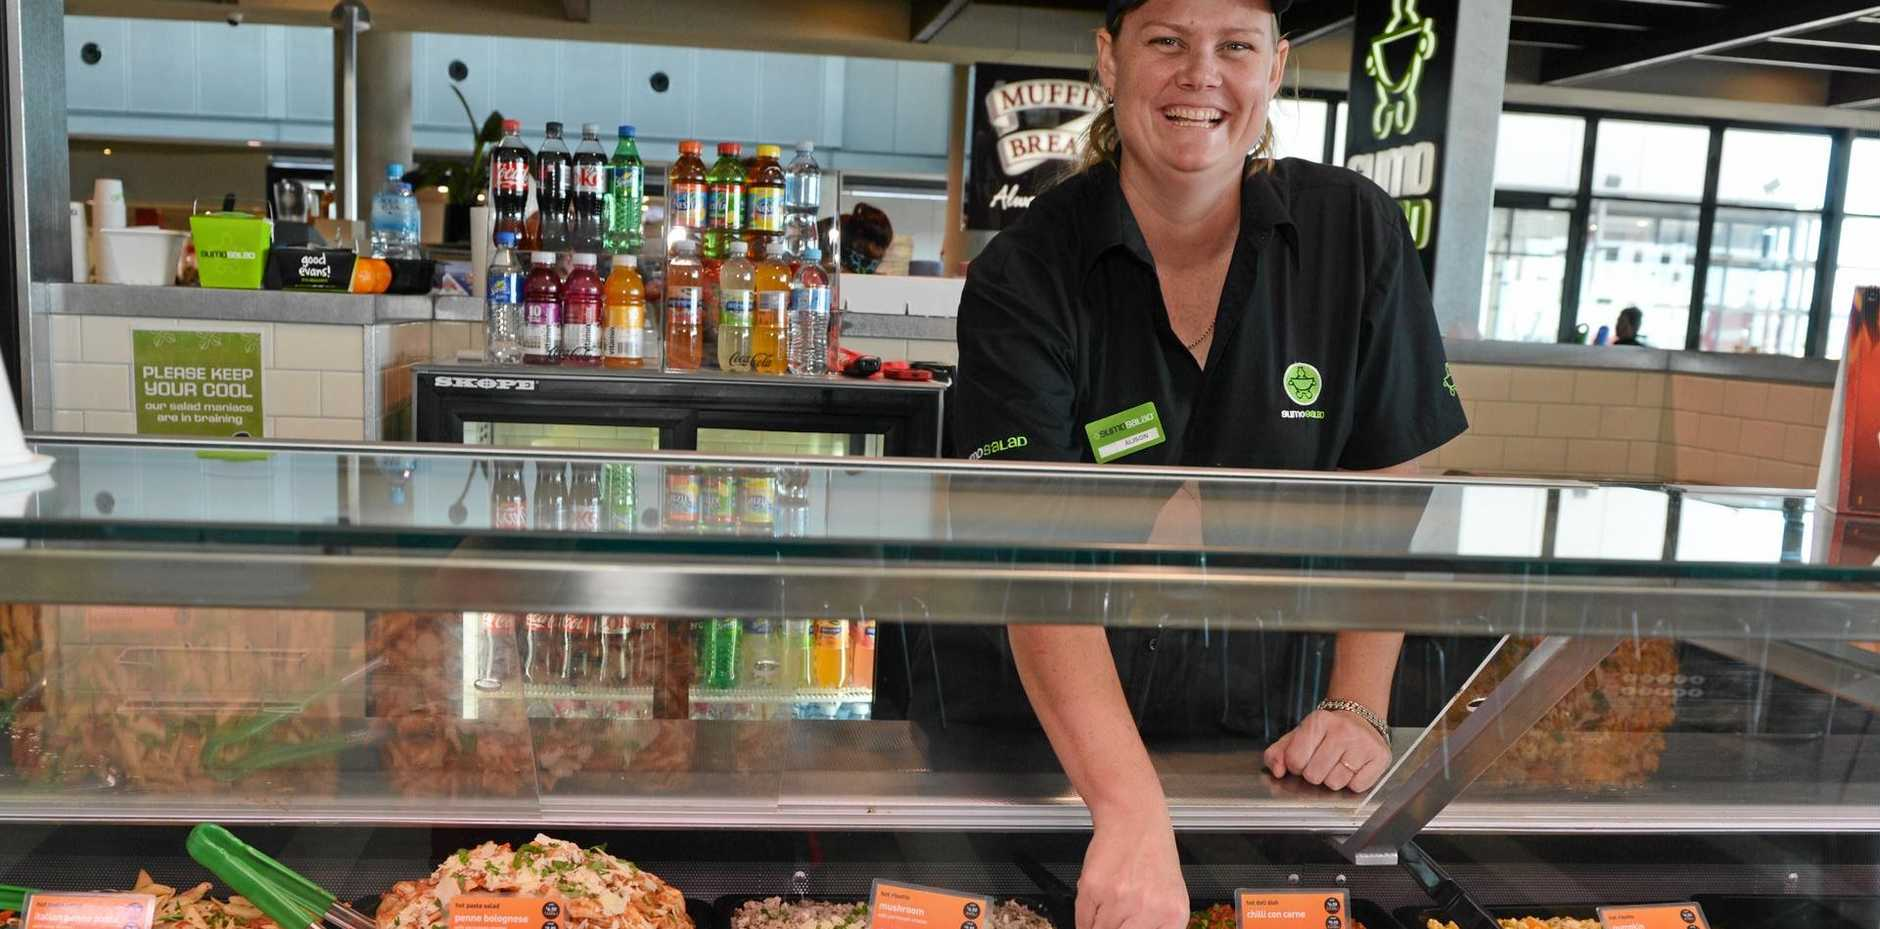 Sumo Salad in Mackay opened at Caneland Central in mid-2013, backed by franchisee Alison English. A staff member at the company's head office says the store has now closed.